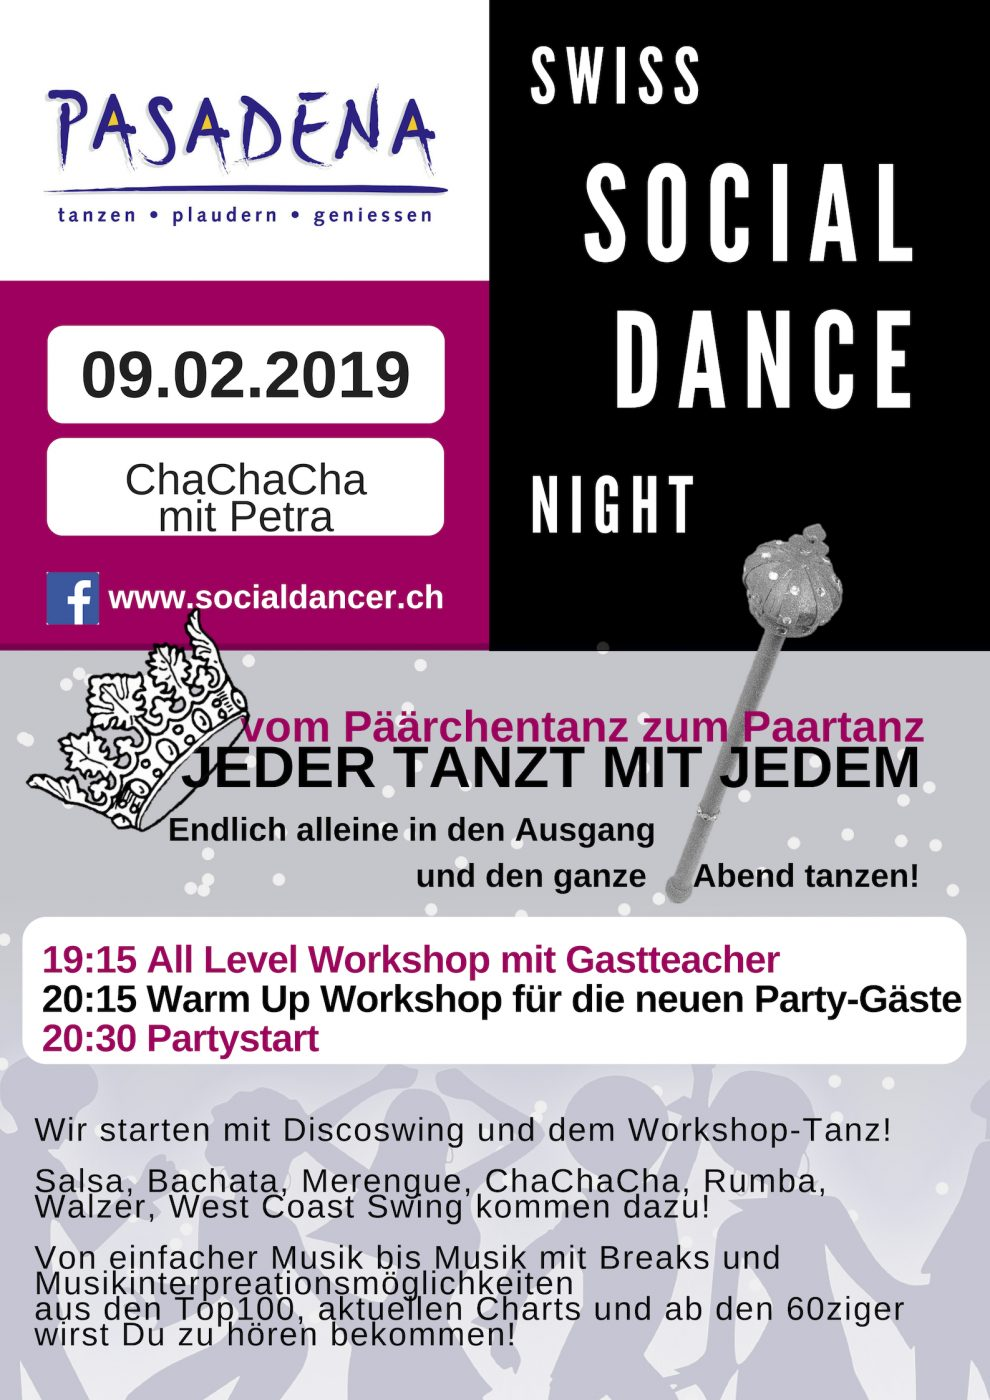 Swiss Social Dance Night